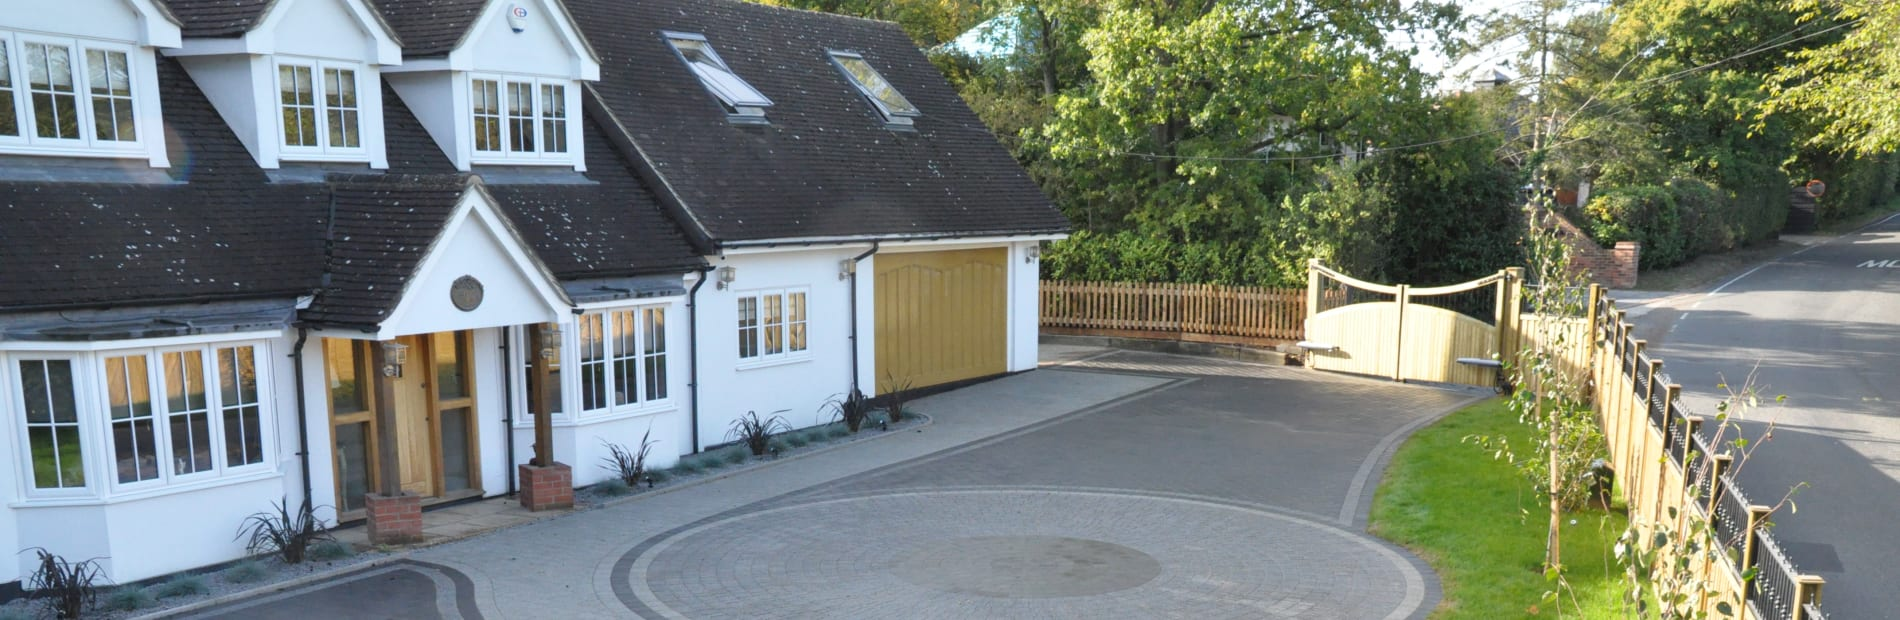 A large circular driveway design using grey paving